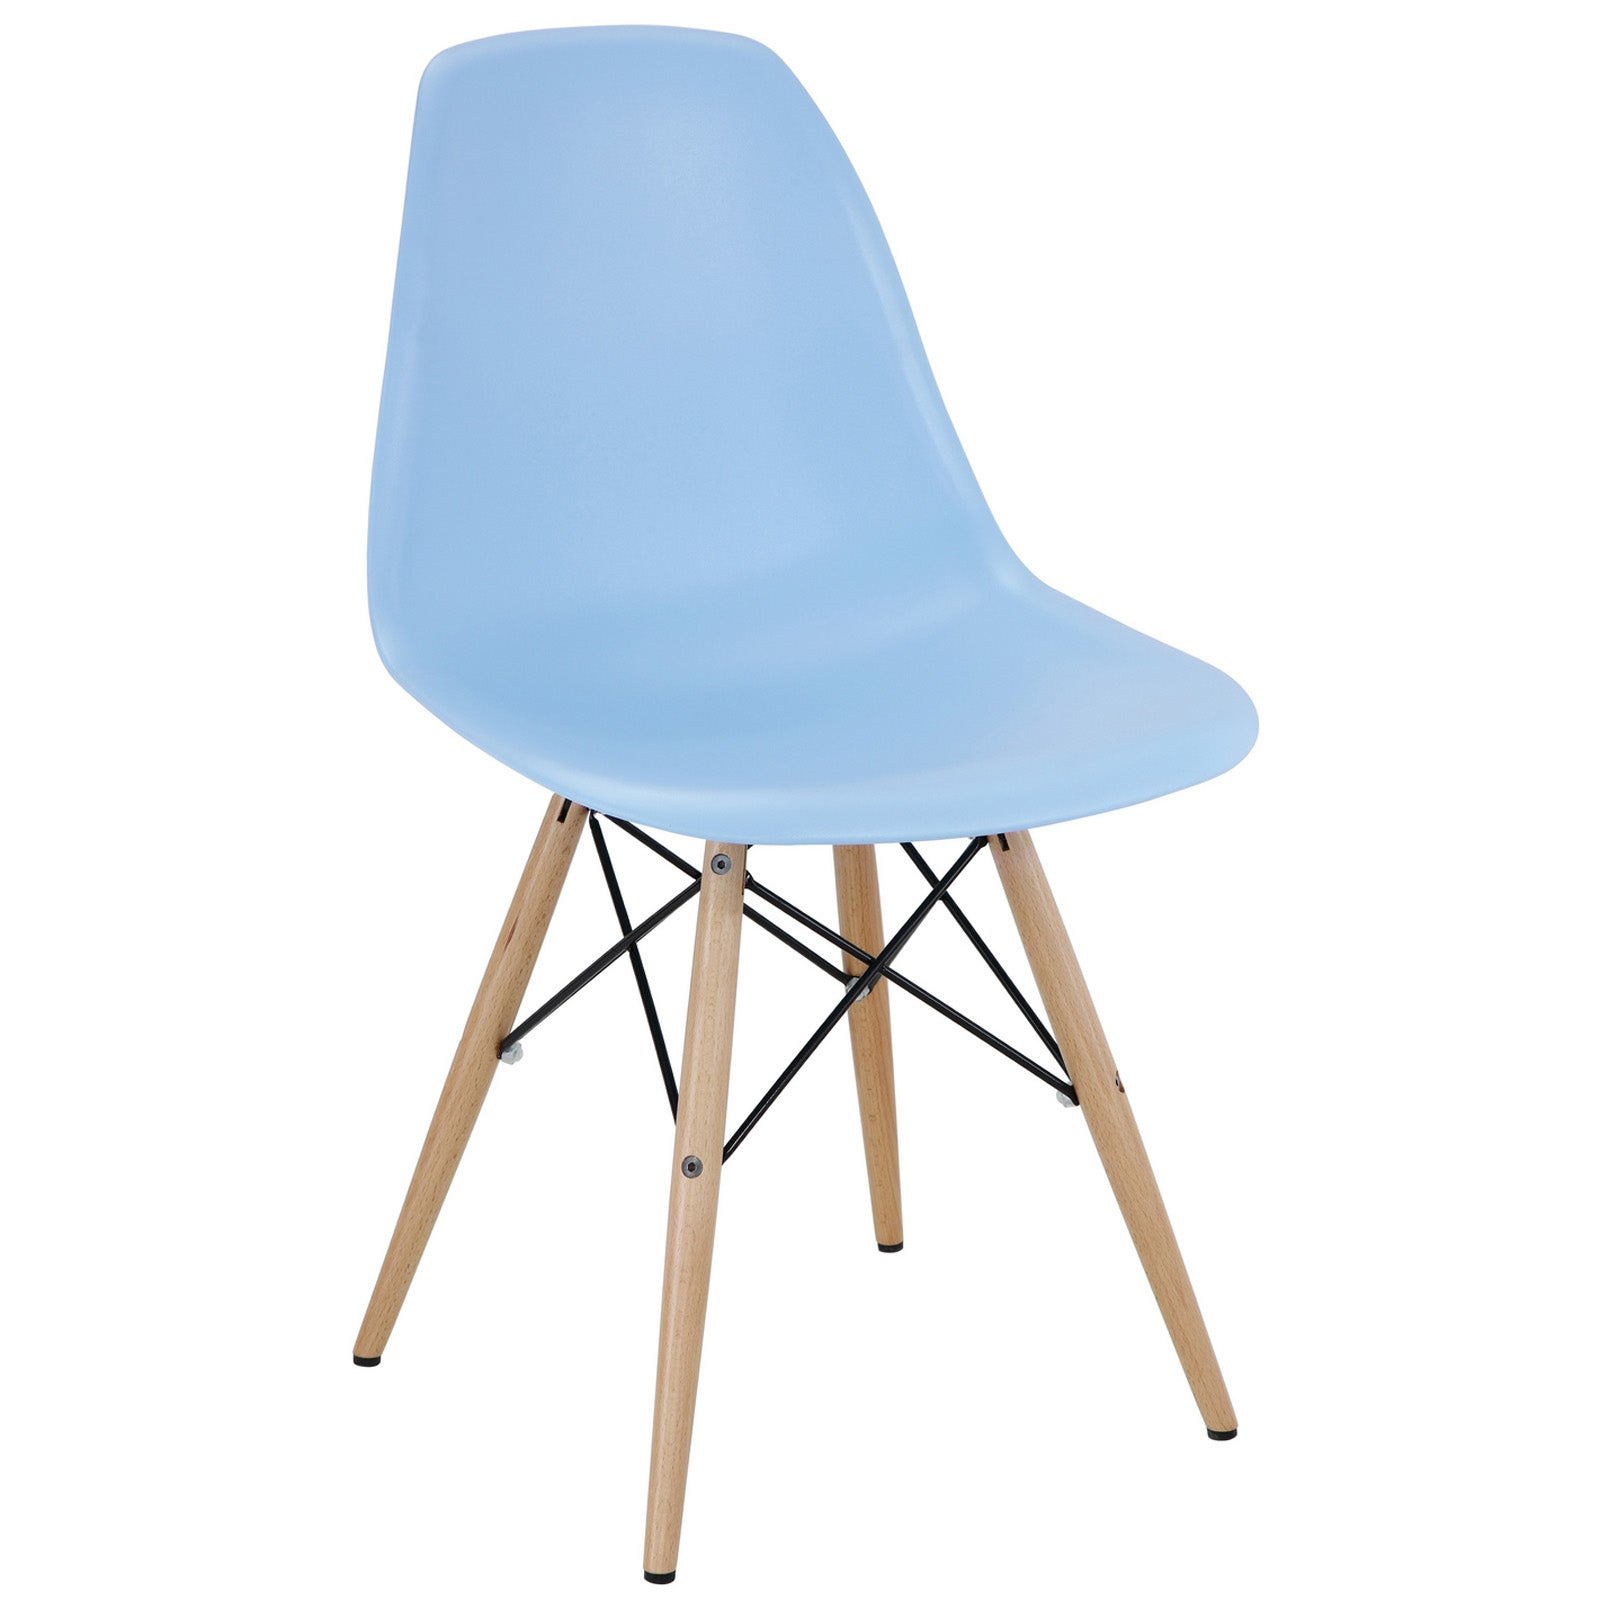 Modway Light Blue Plastic Dining Chair with Wooden Base (...